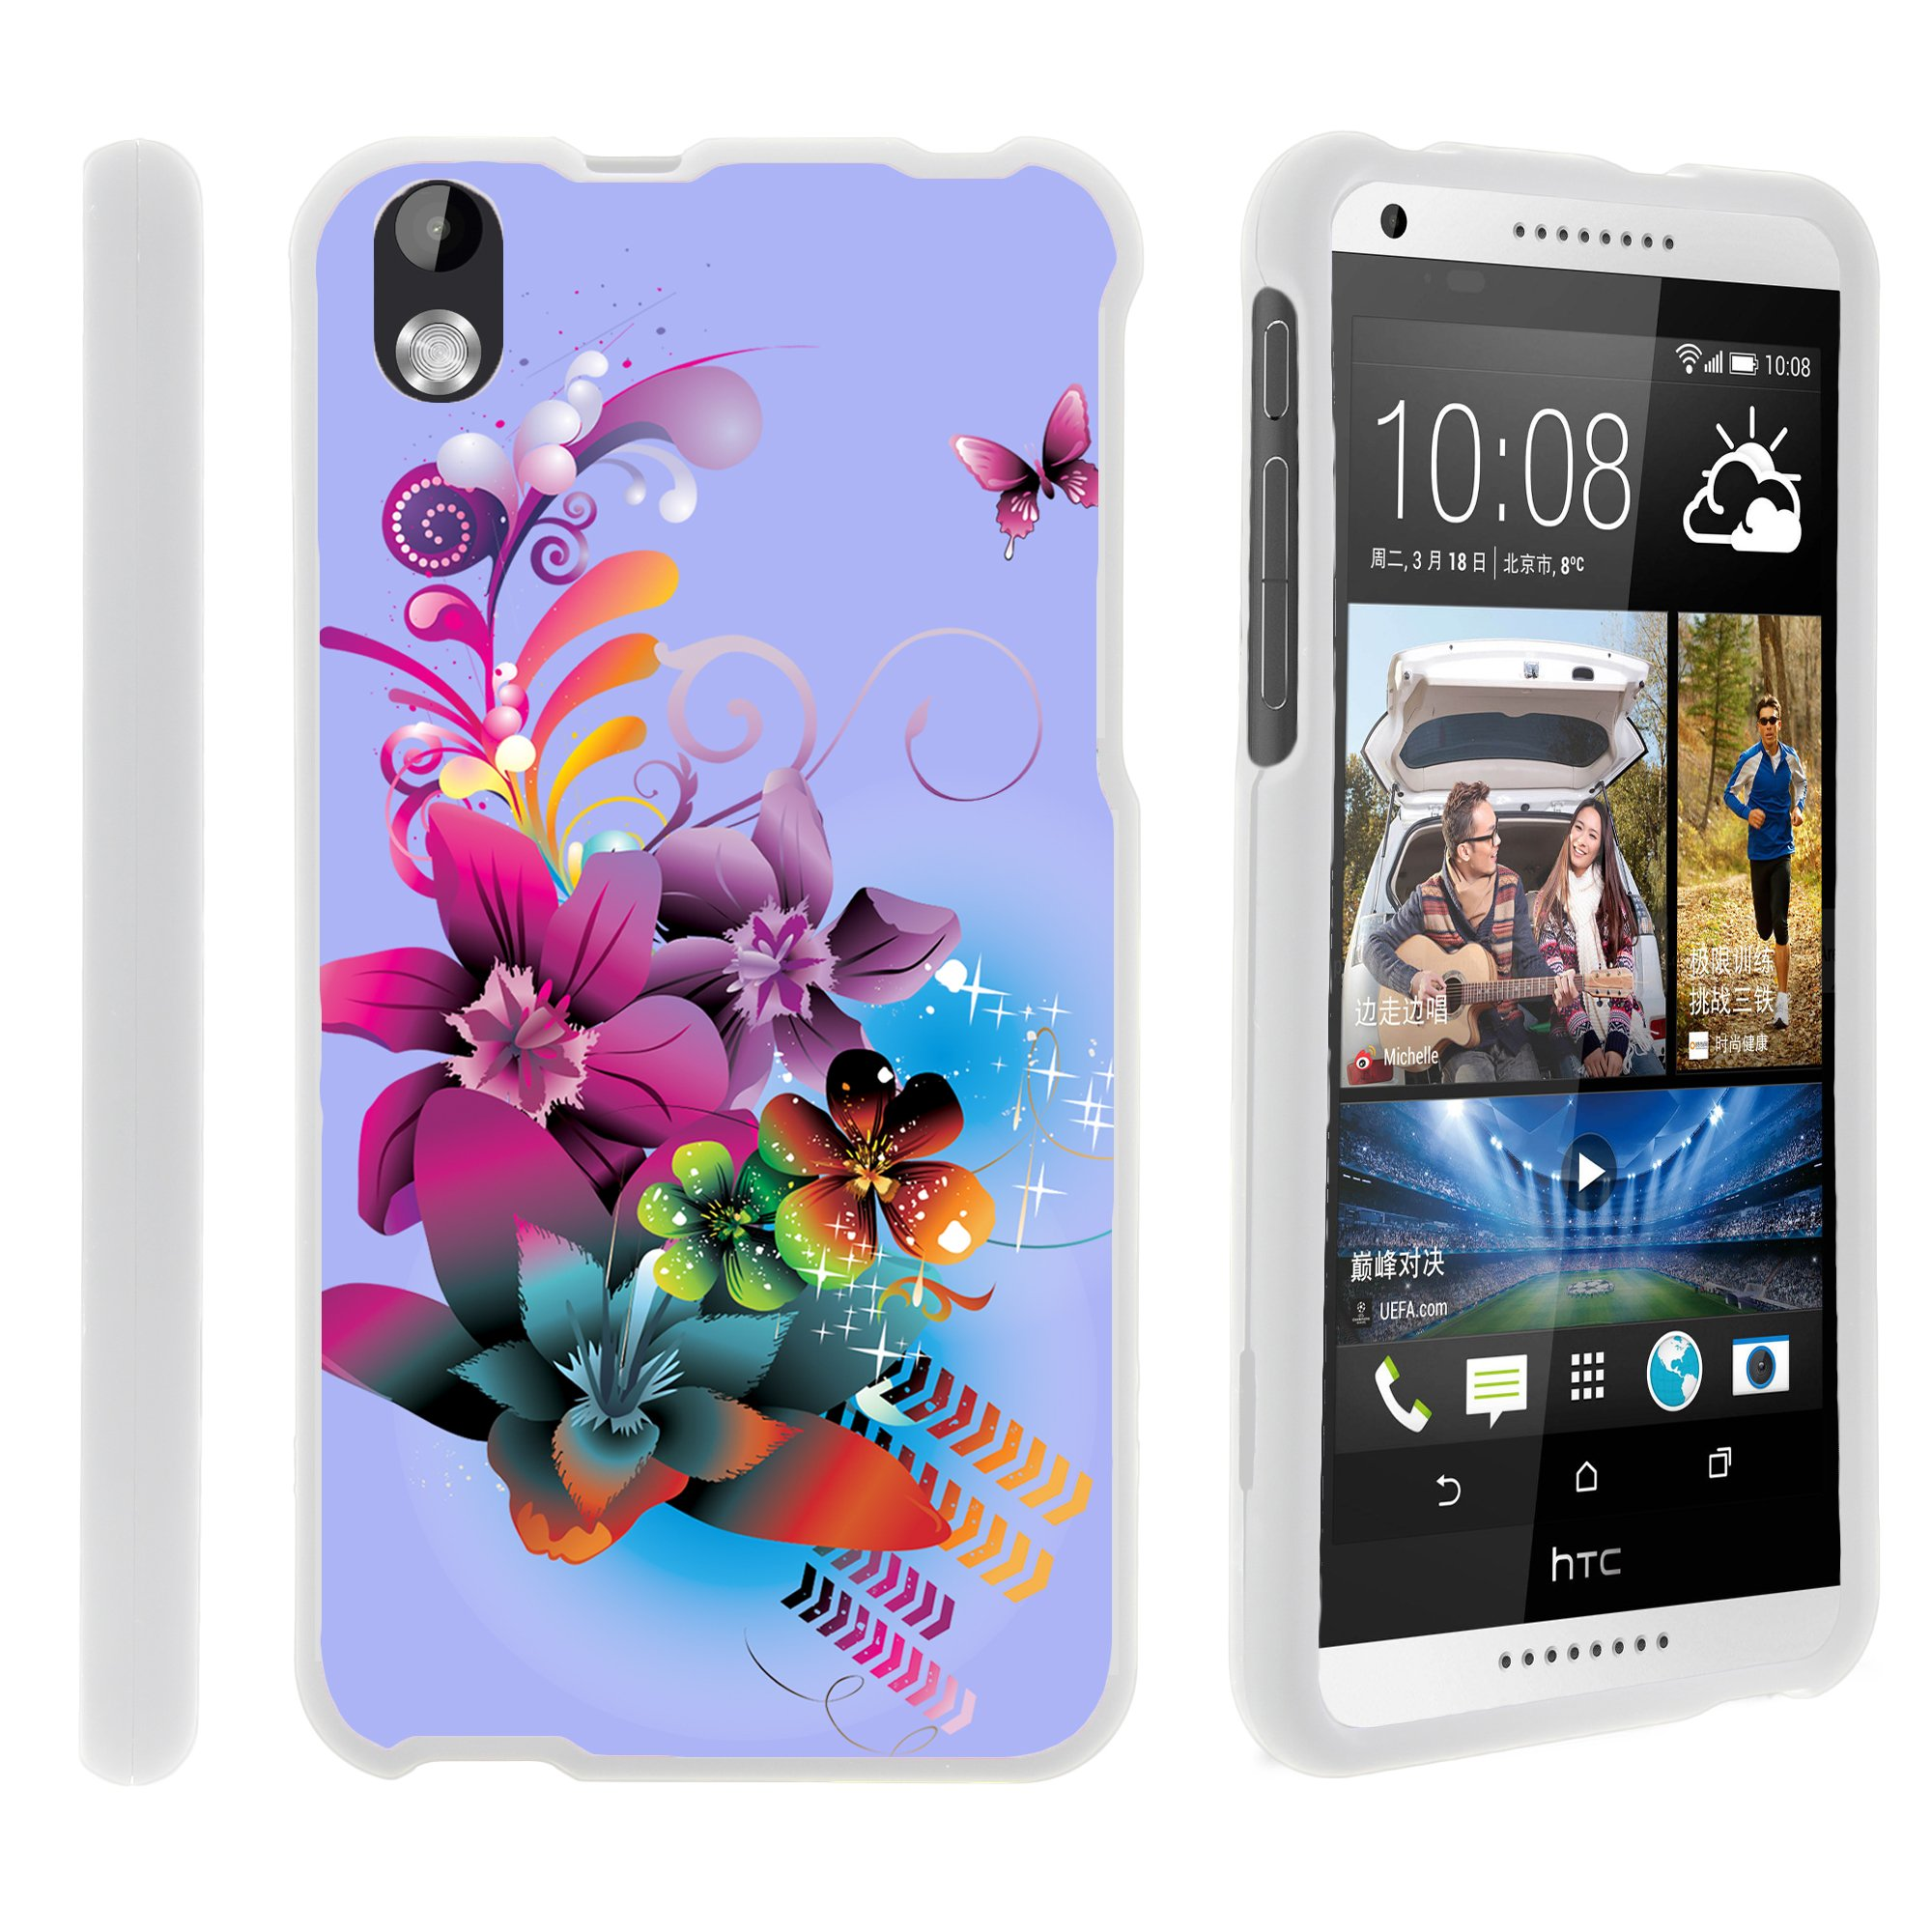 HTC Desire 816, [SNAP SHELL][White] 2 Piece Snap On Rubberized Hard White Plastic Cell Phone Case with Exclusive Art -  Purple Flower Butterfly